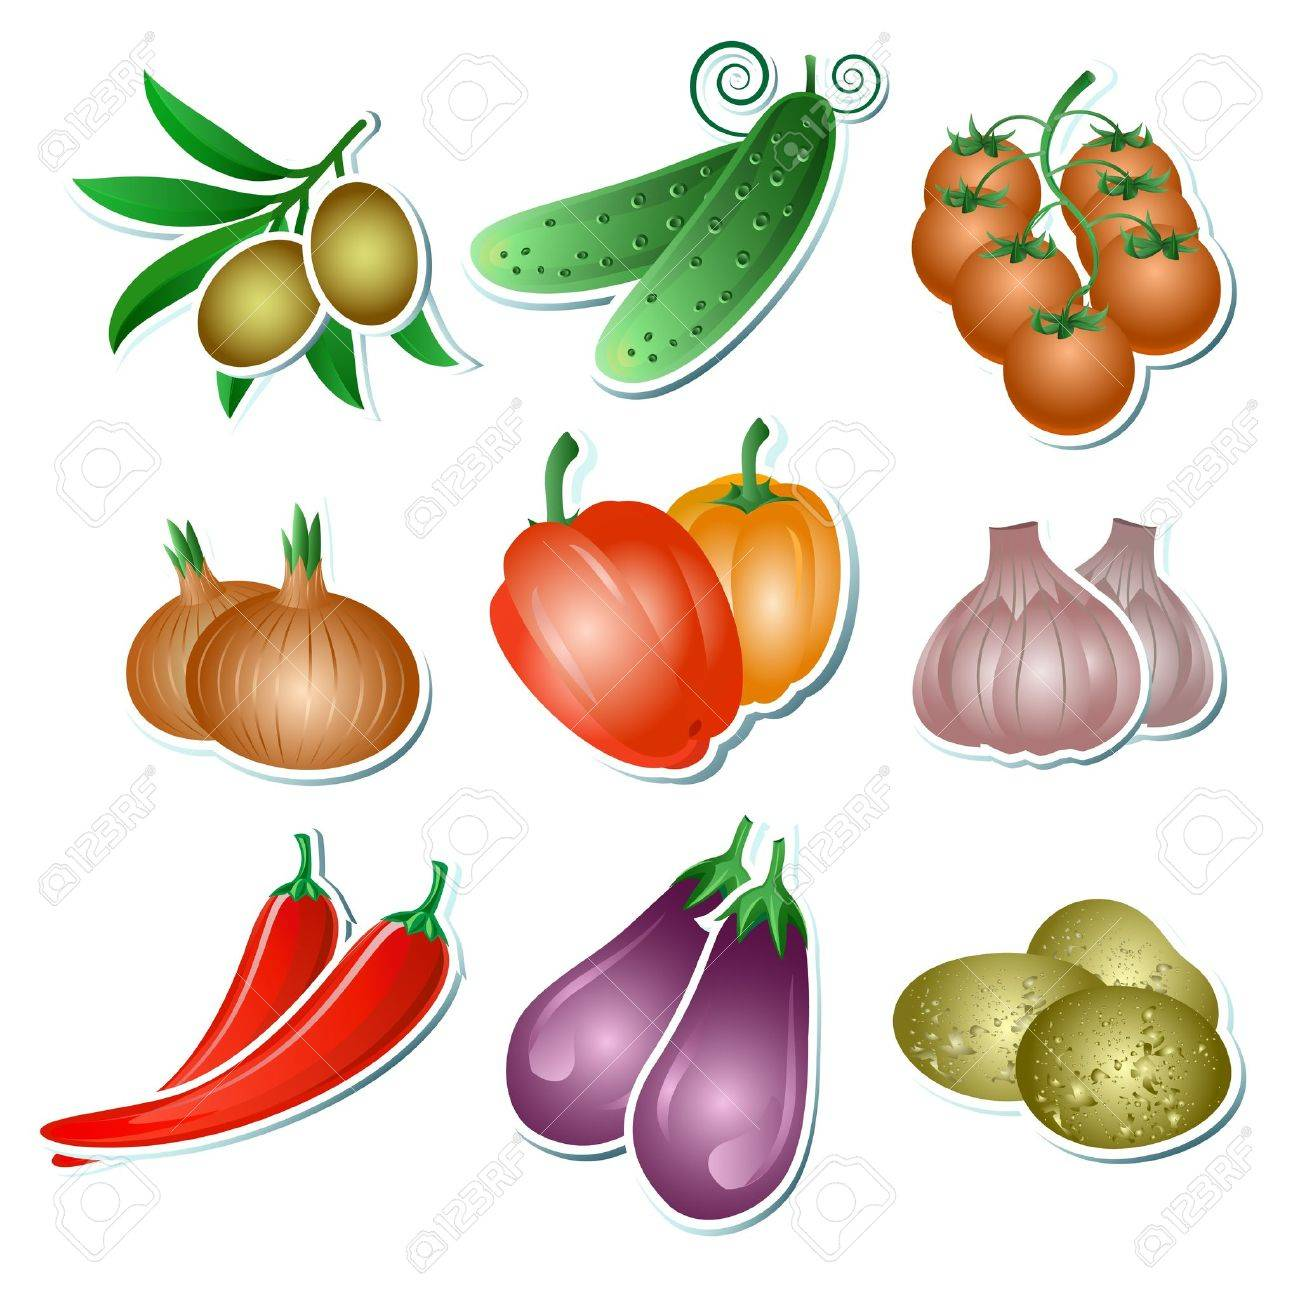 Set of illustration vegetables stickers on the white background Stock Vector - 16564811